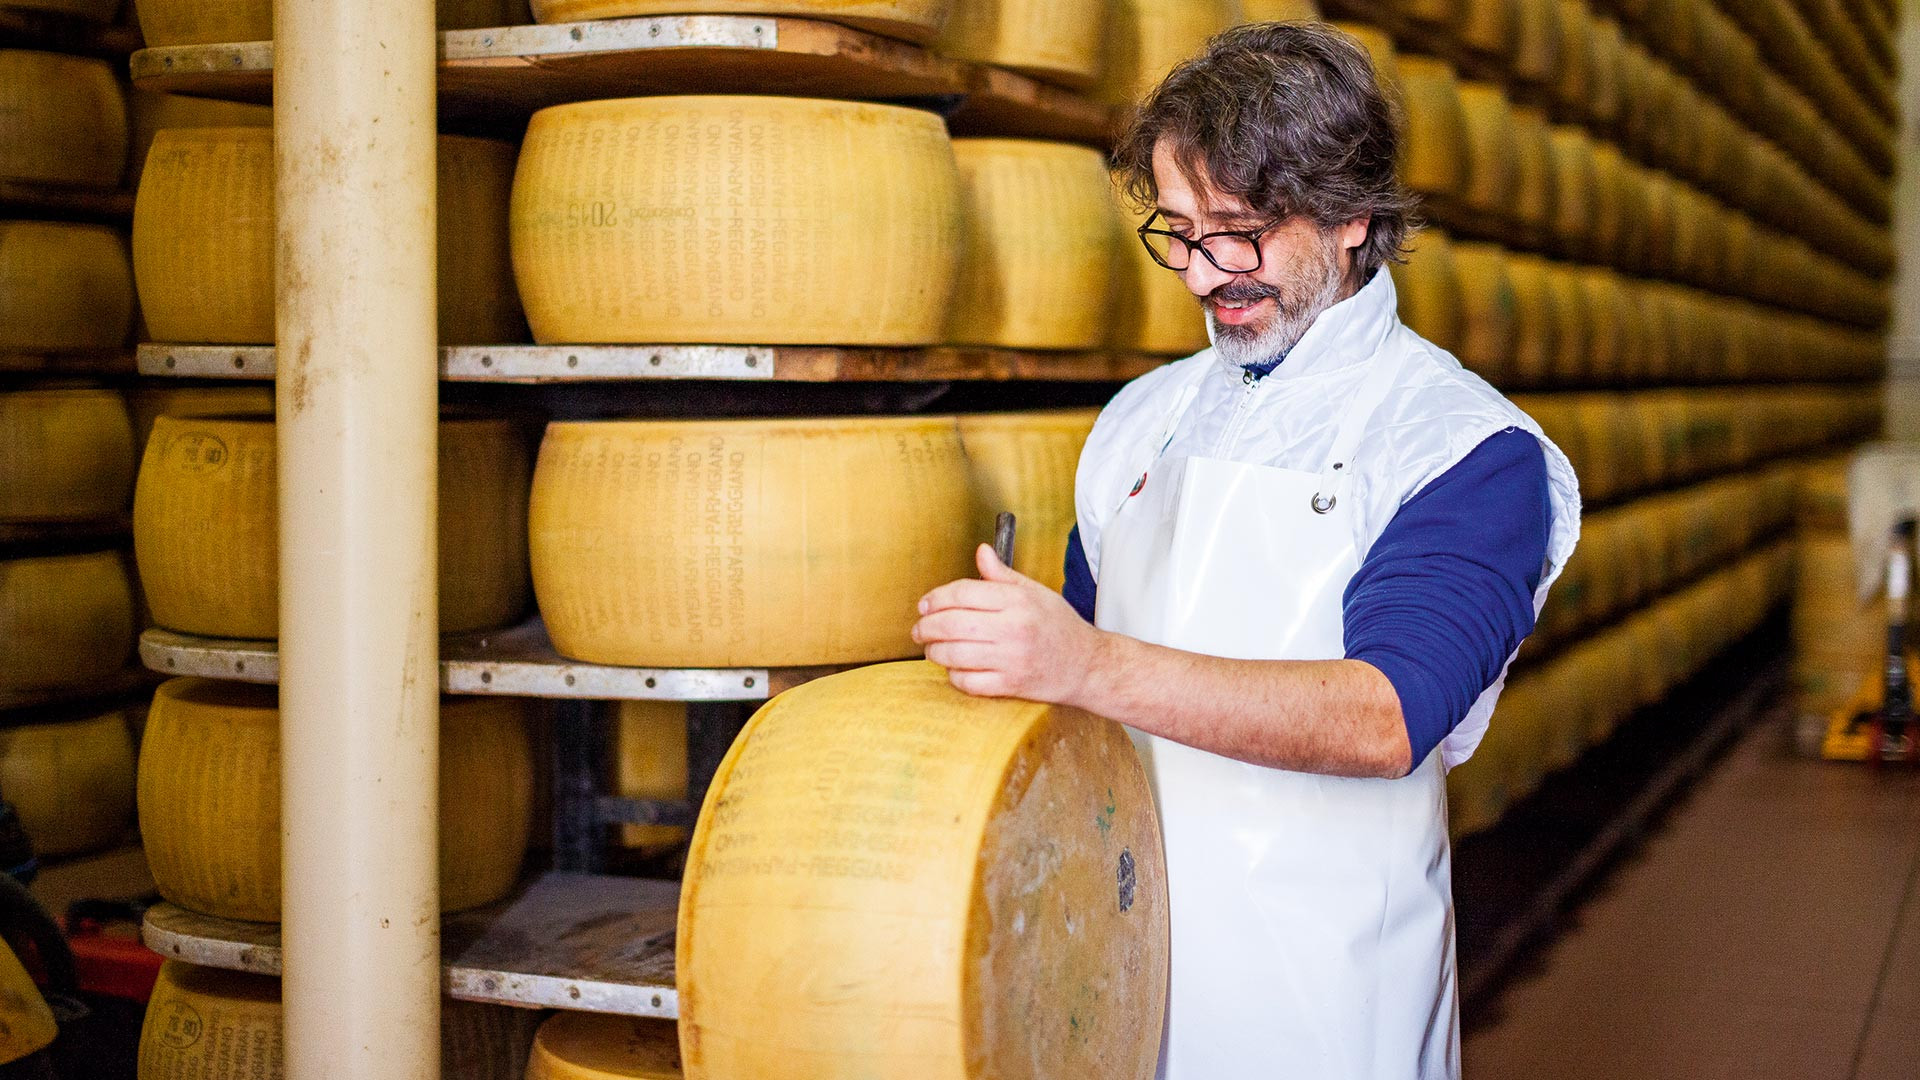 Damiano Delfante inspects one of his wheels of parmesan